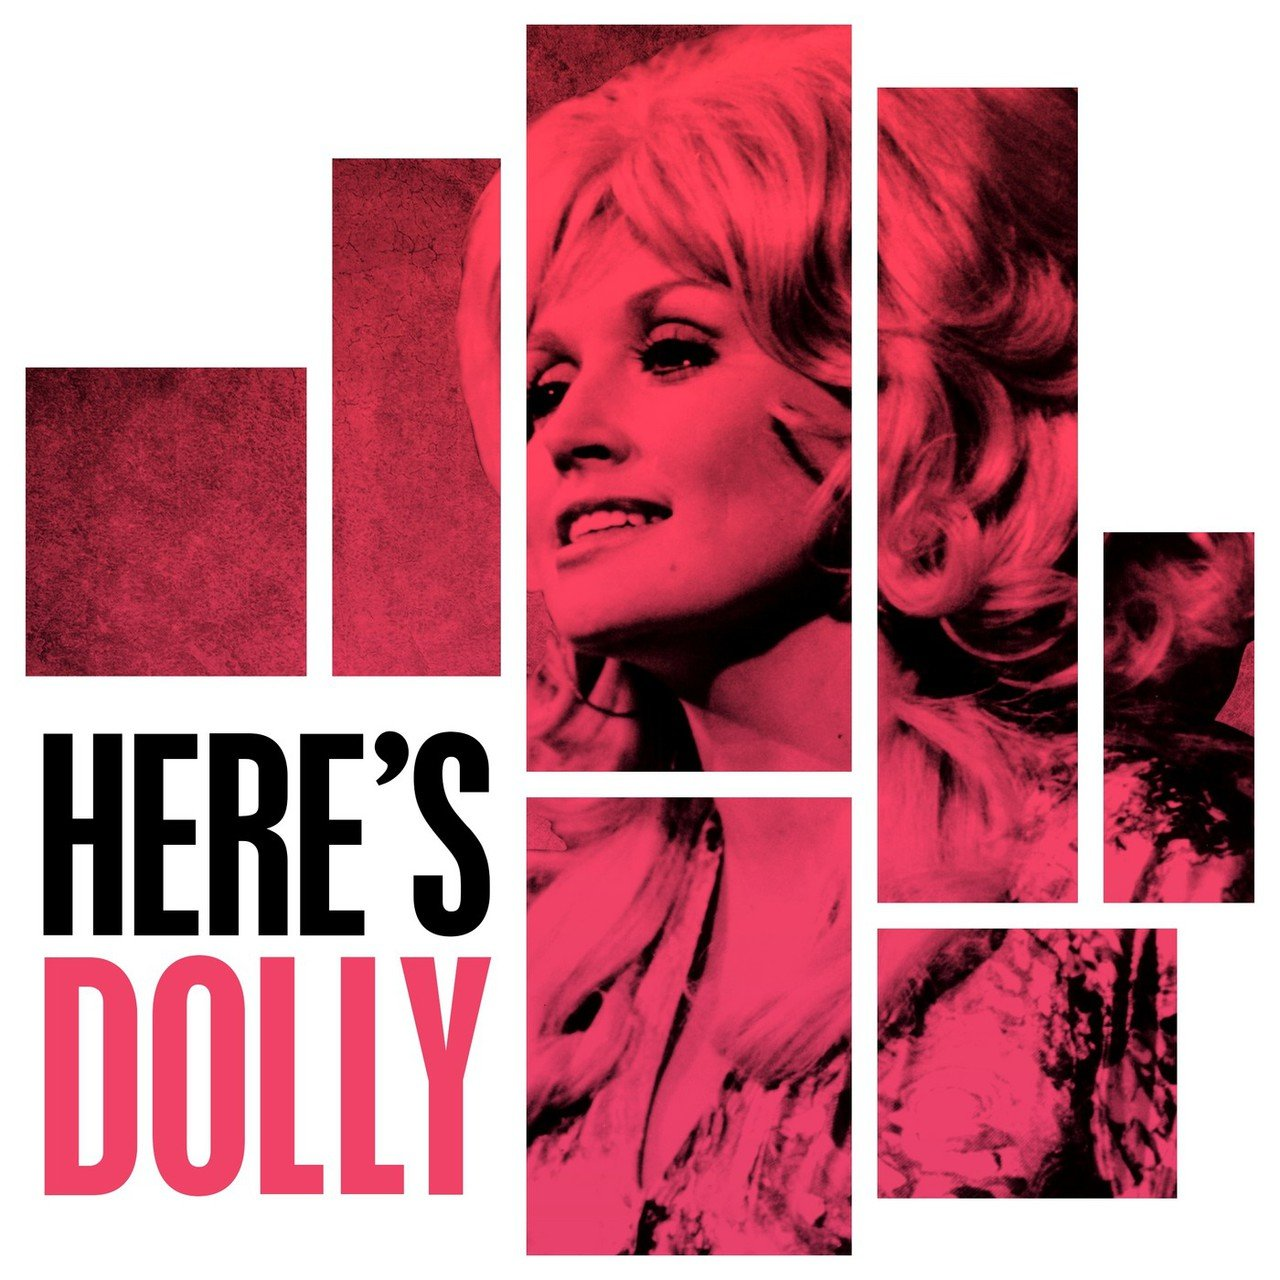 Here's Dolly